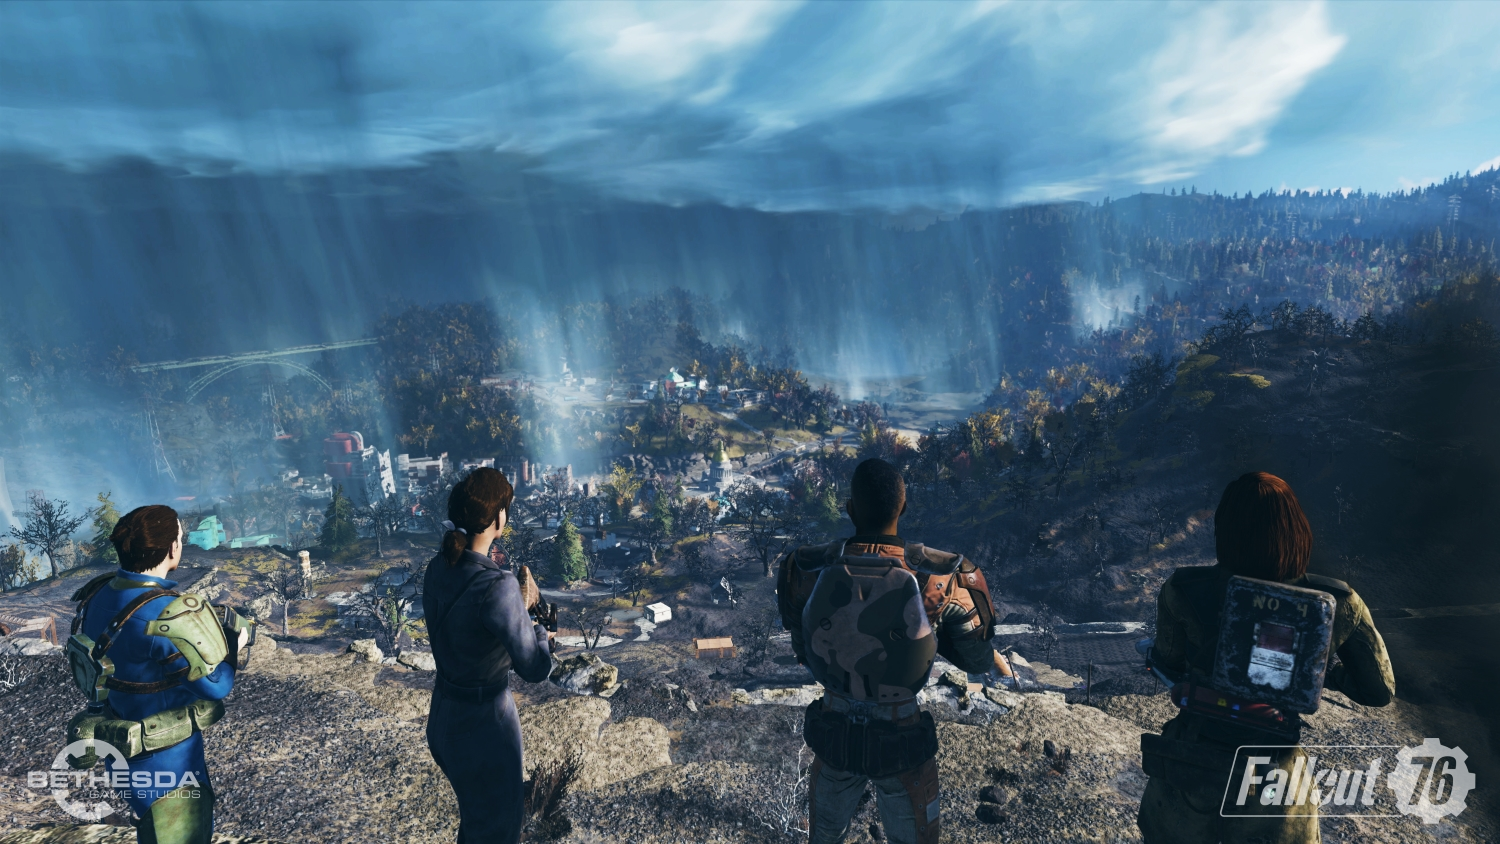 Fallout 76 (XO) - first impressions are not good